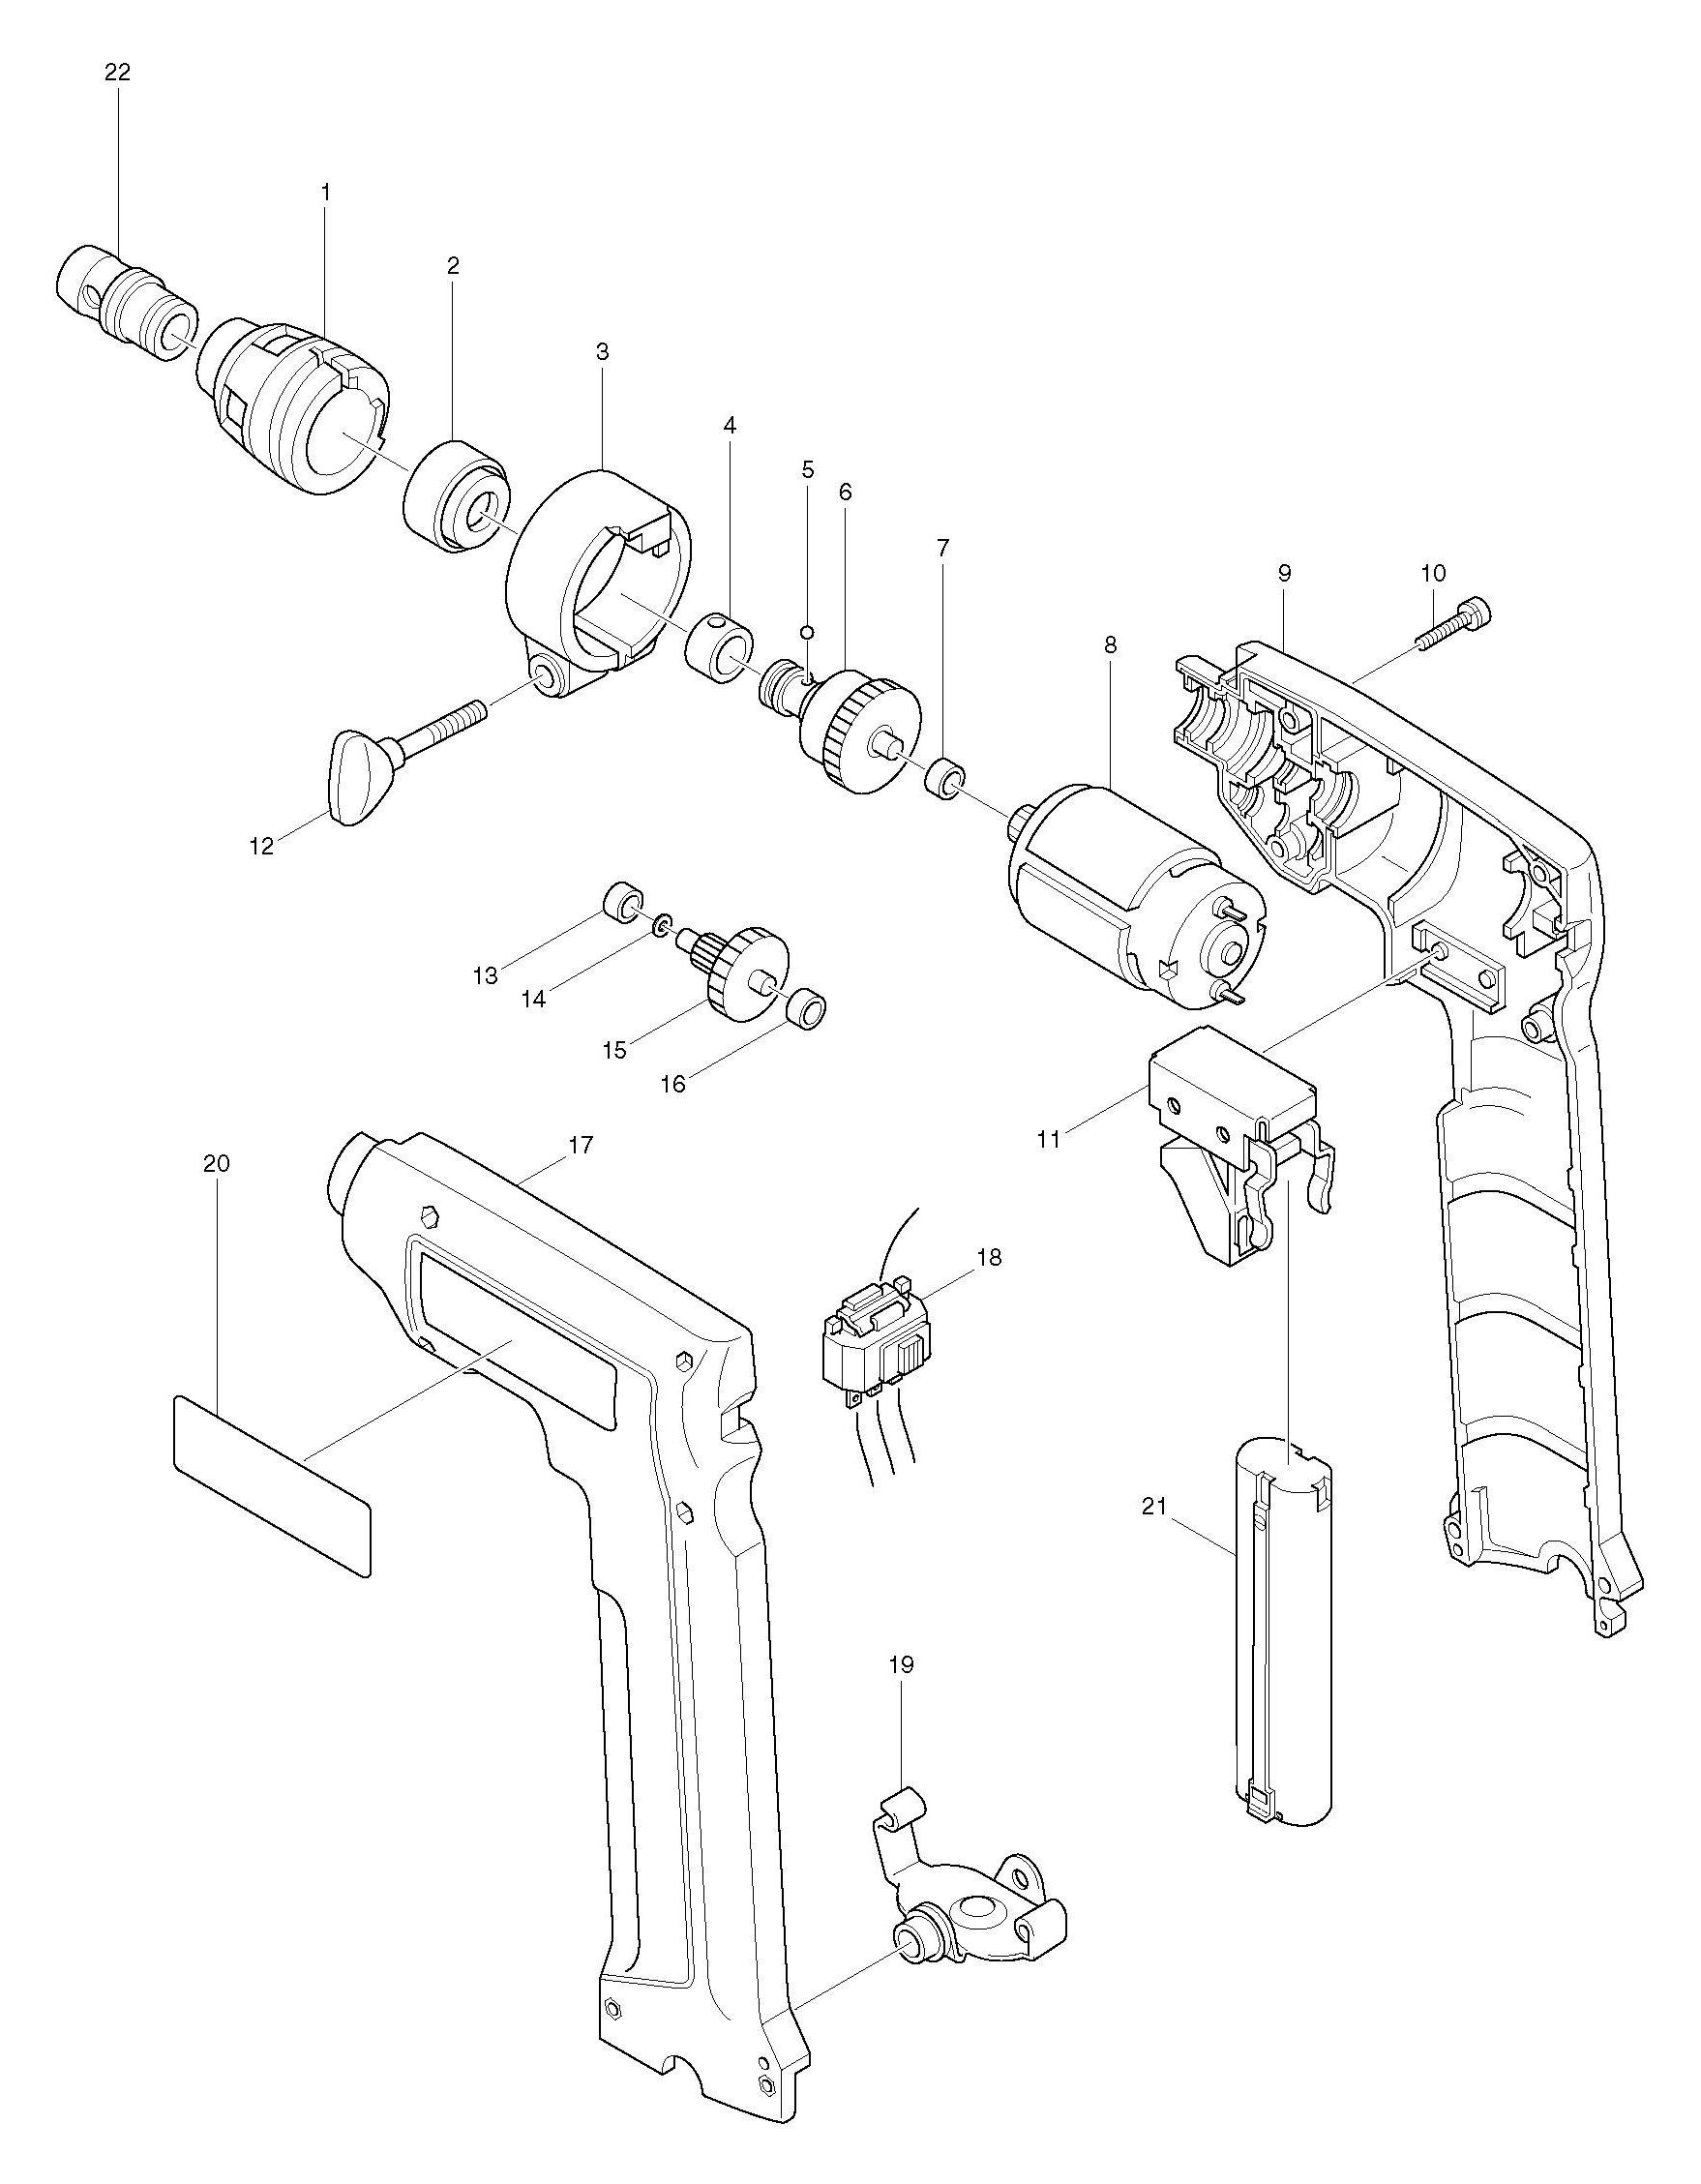 Spares for Makita 6891d Drill/driver SPARE_6891D from